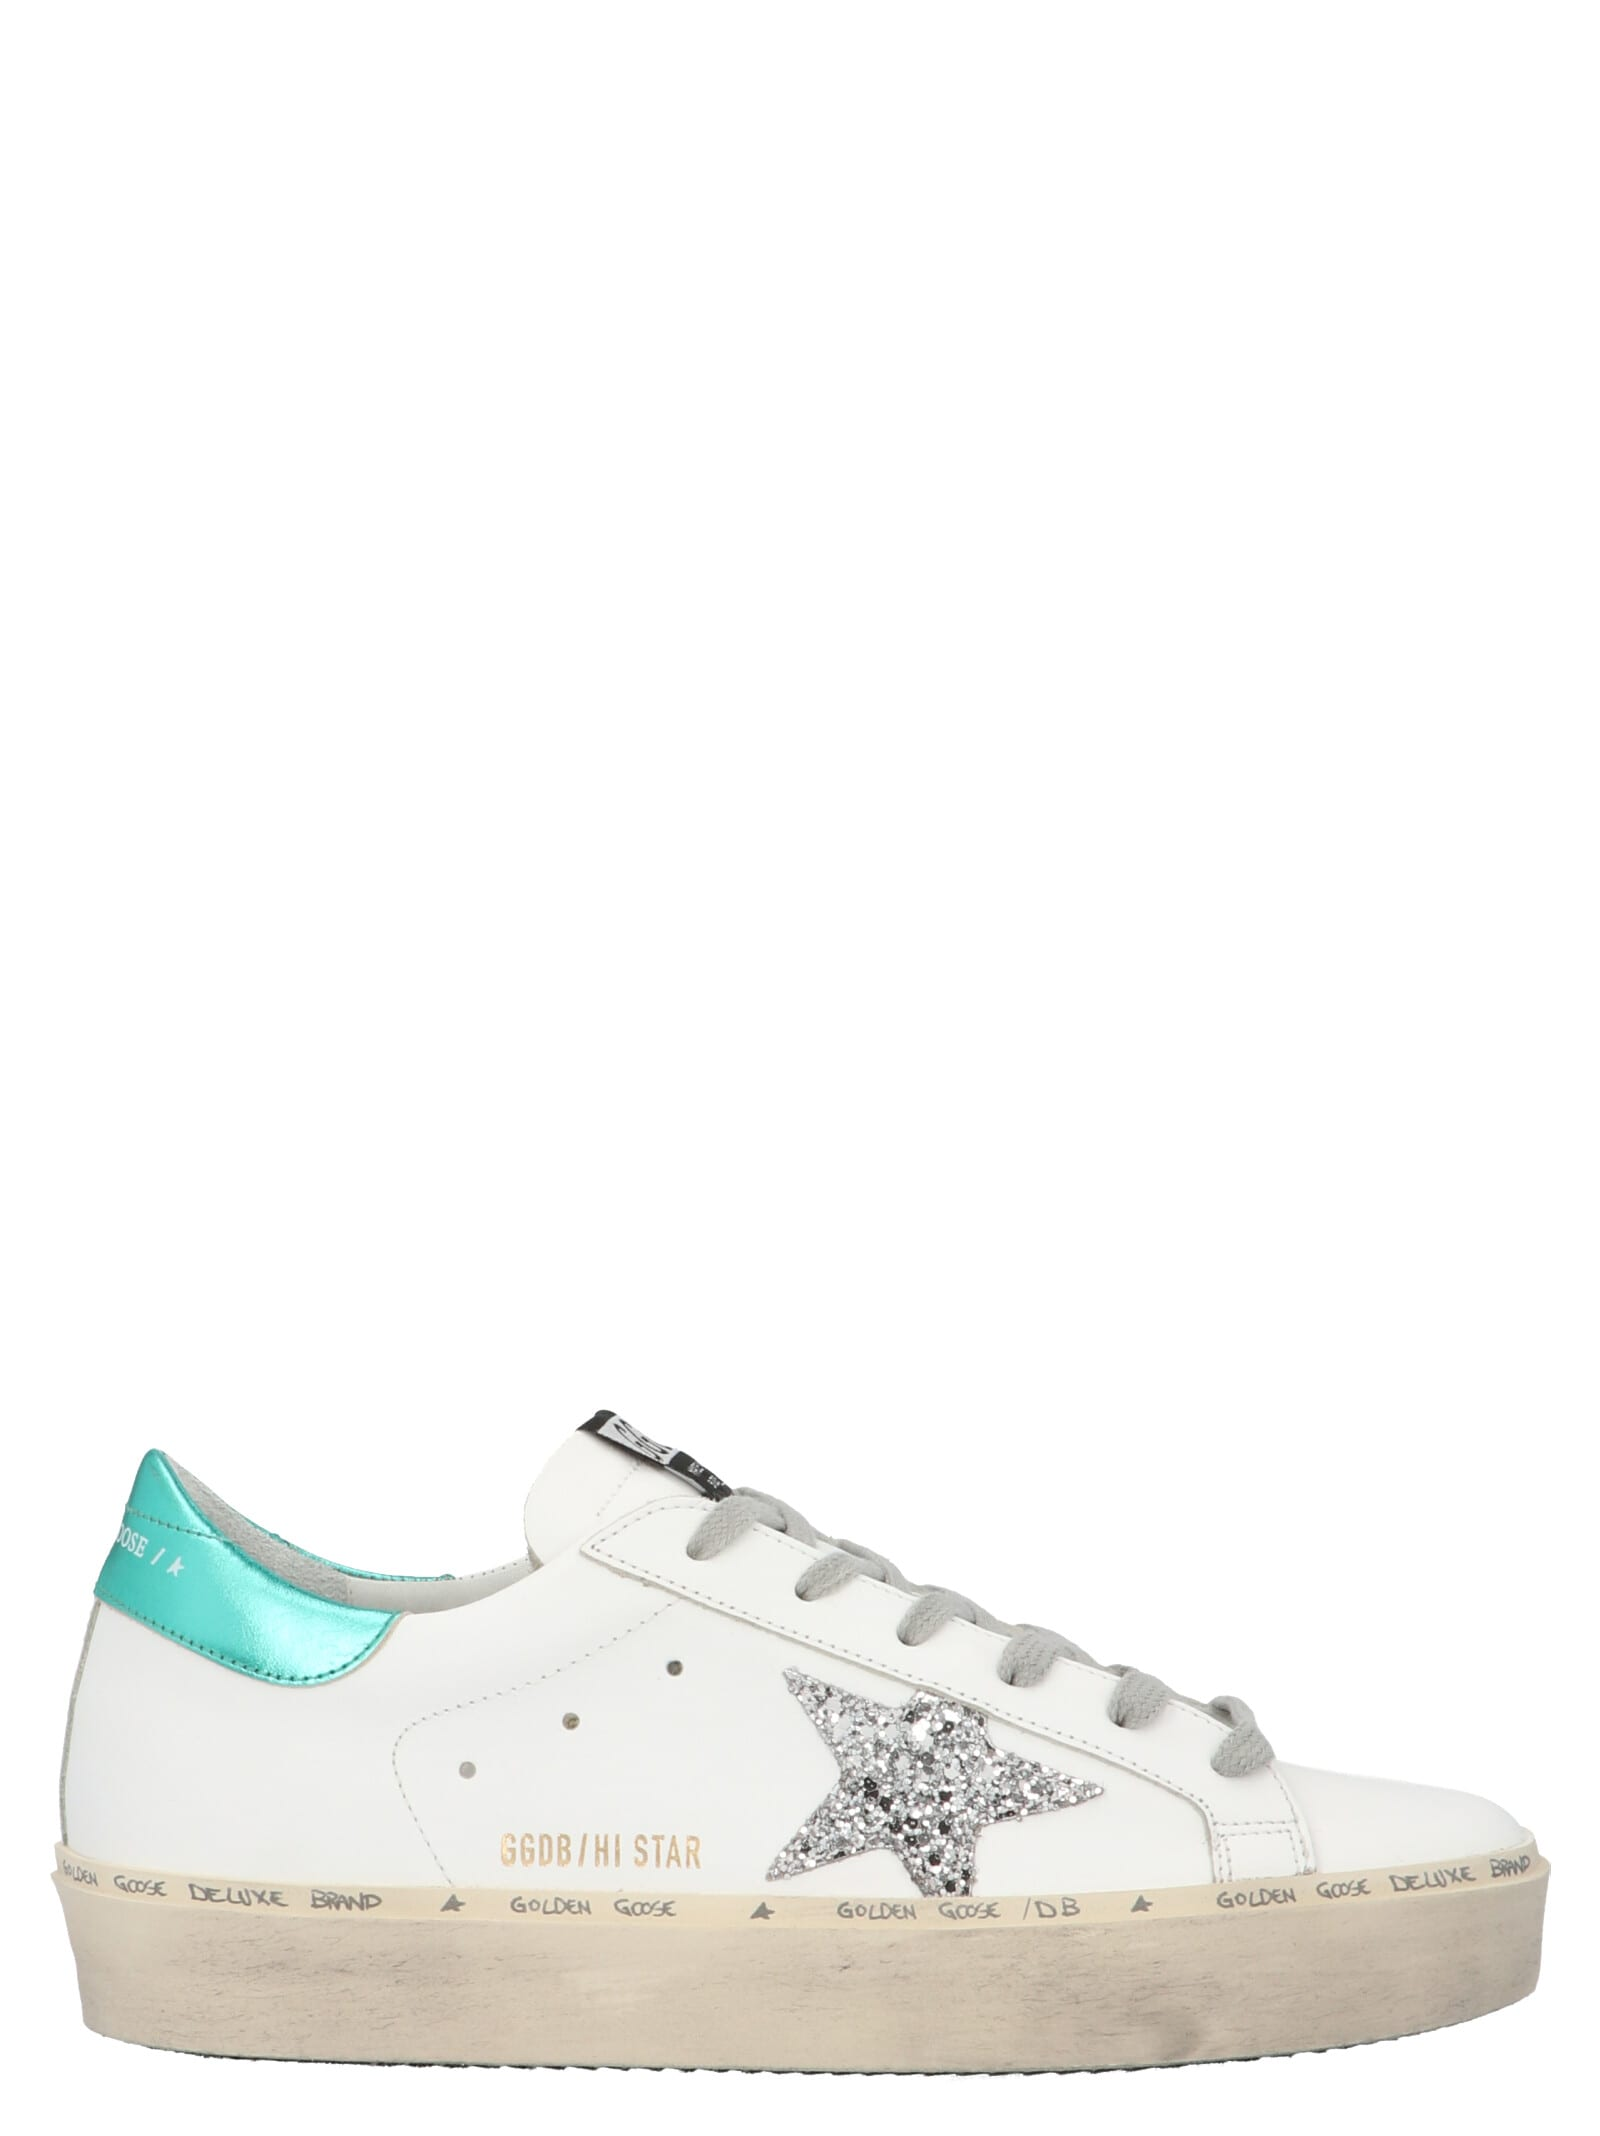 hi Star Shoes From Golden Goose: Leather hi Star SneakersComposition: 100% calf leather